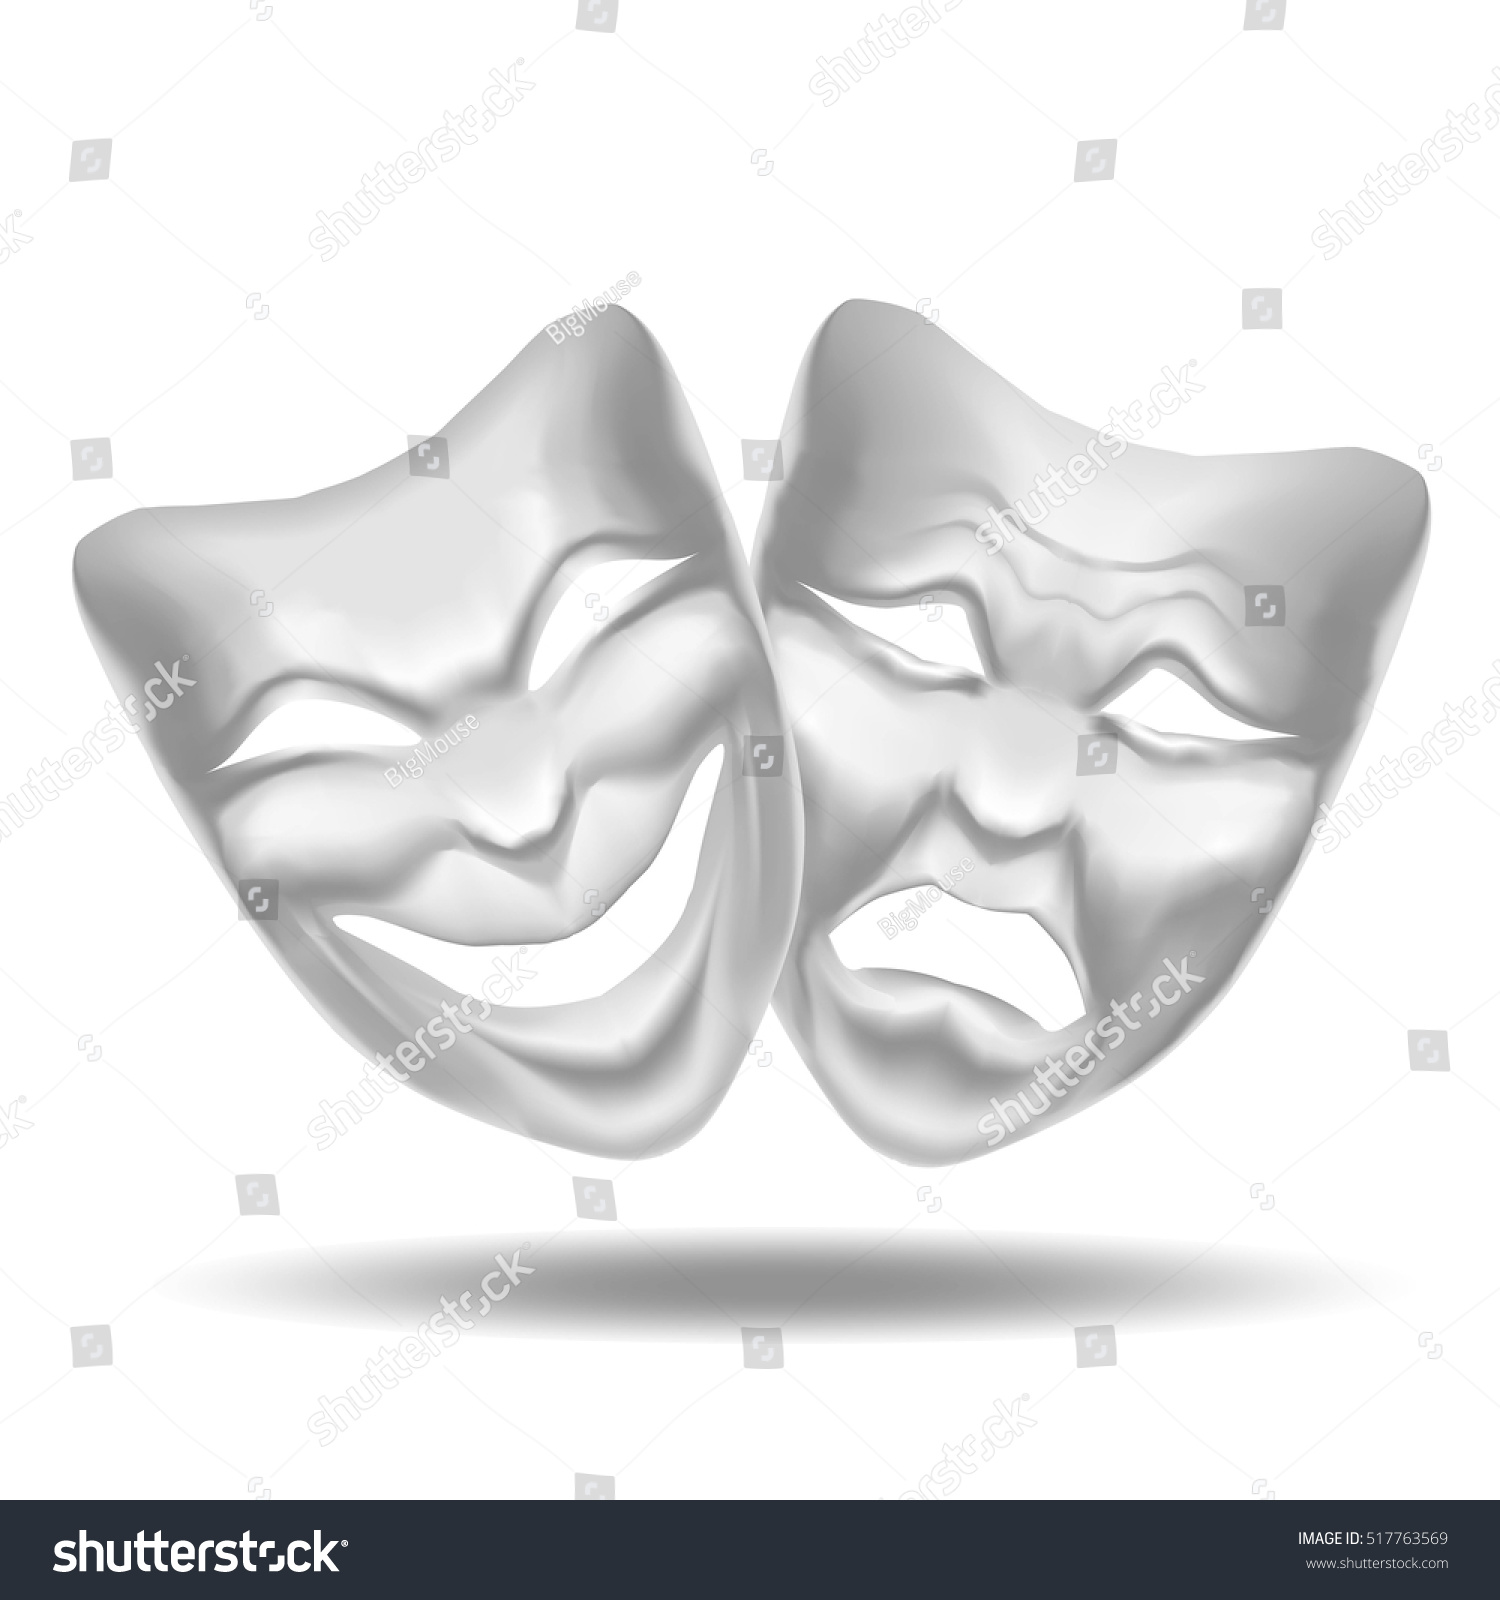 Template Blank White Comedy Tragedy Mask Stock Vector 517763569 ...